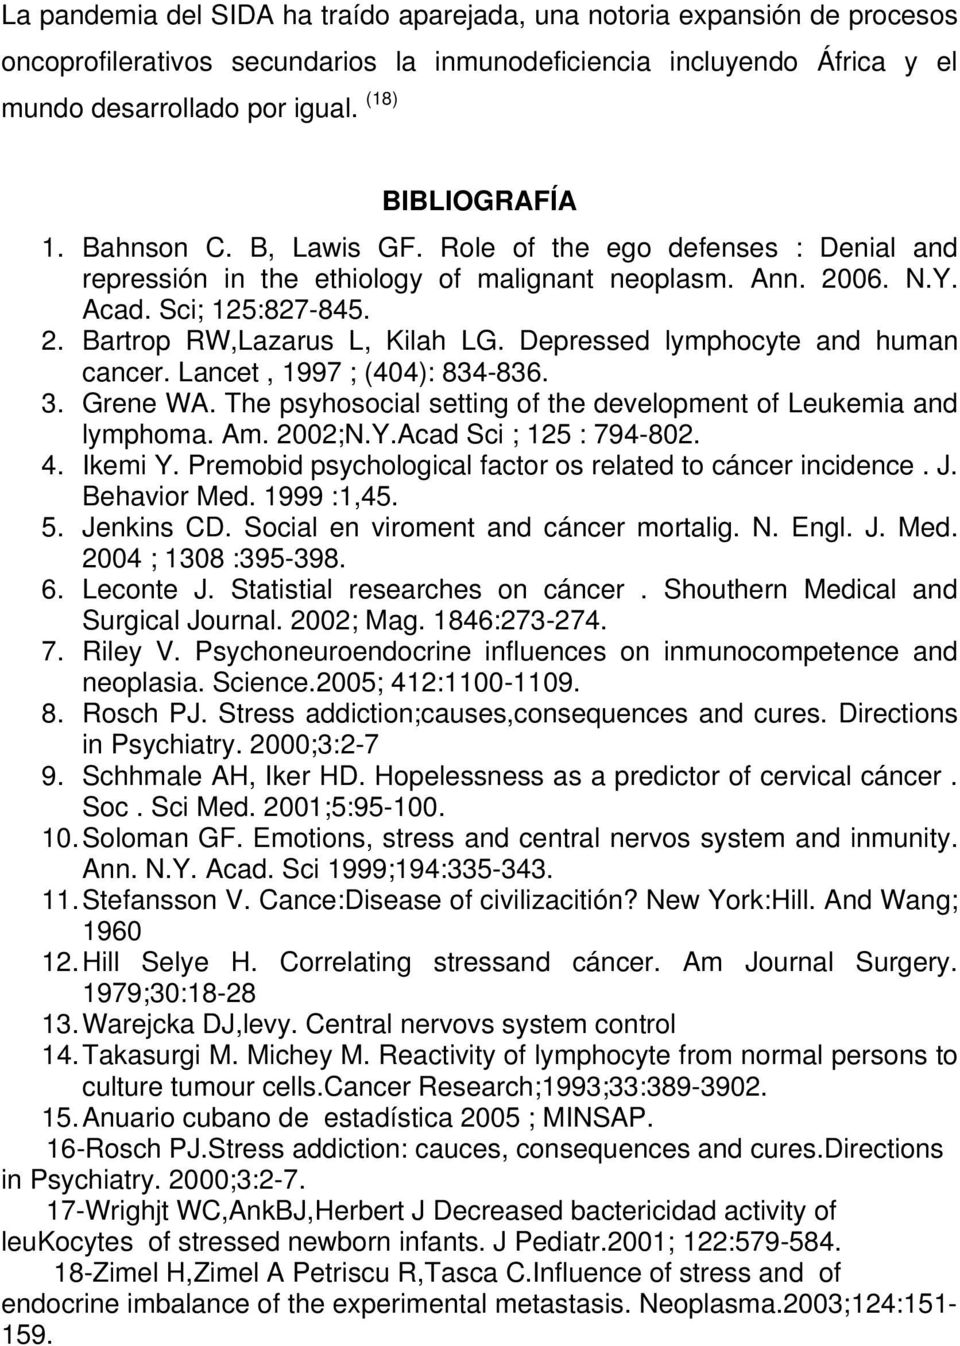 Depressed lymphocyte and human cancer. Lancet, 1997 ; (404): 834-836. 3. Grene WA. The psyhosocial setting of the development of Leukemia and lymphoma. Am. 2002;N.Y.Acad Sci ; 125 : 794-802. 4.